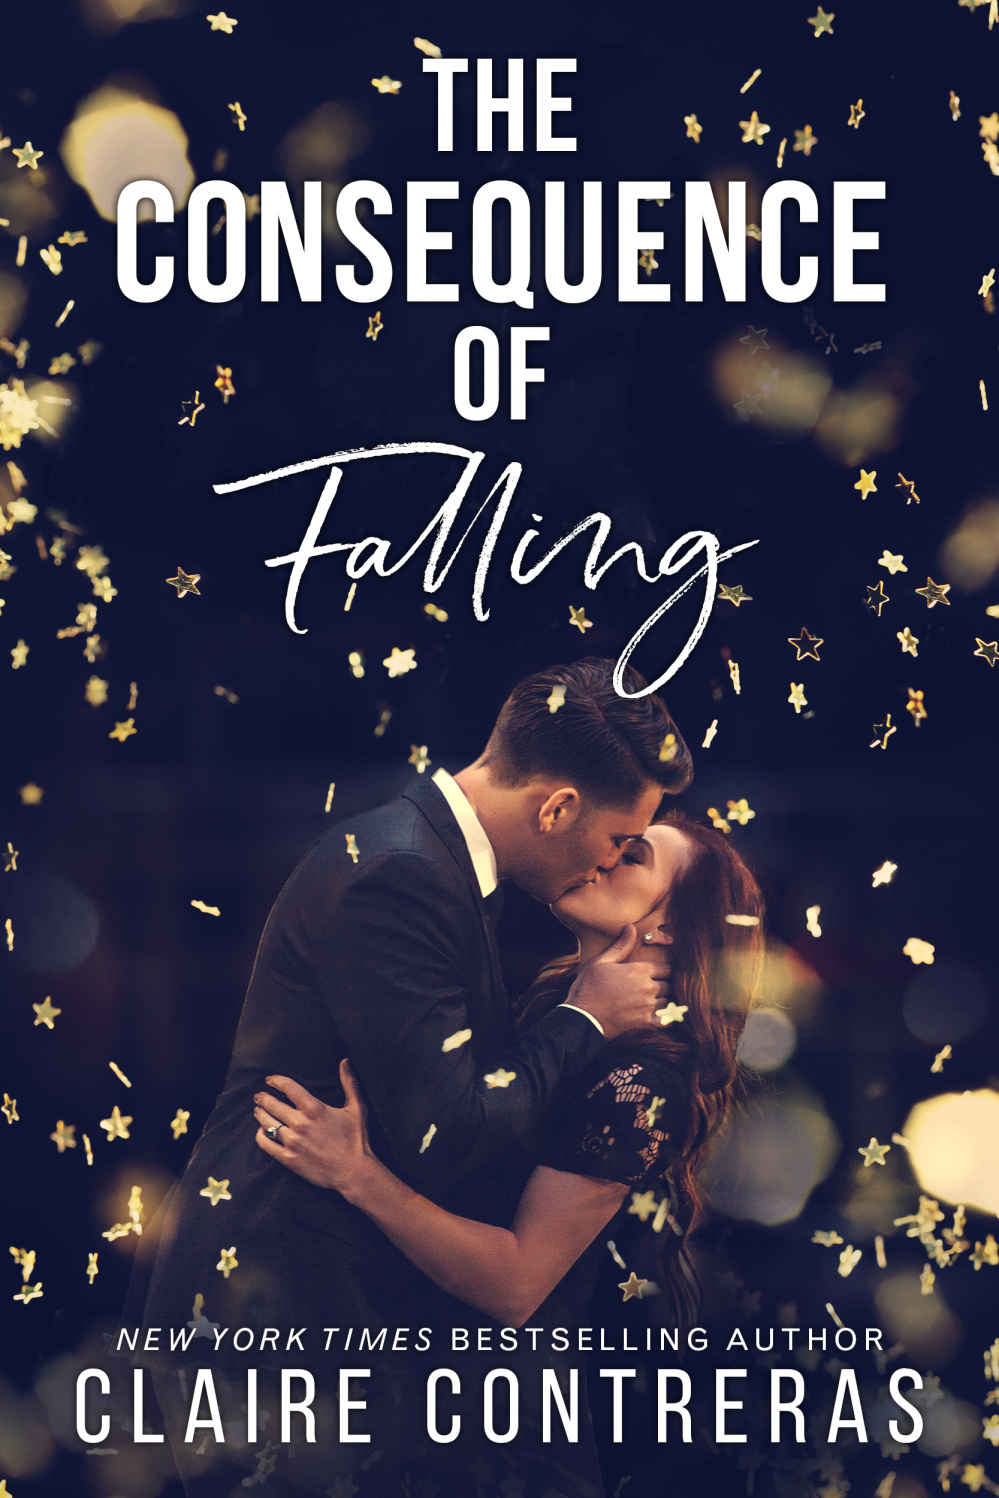 The Consequence of Falling: New York Times Bestselling Author 1st Edition Pdf Free Download